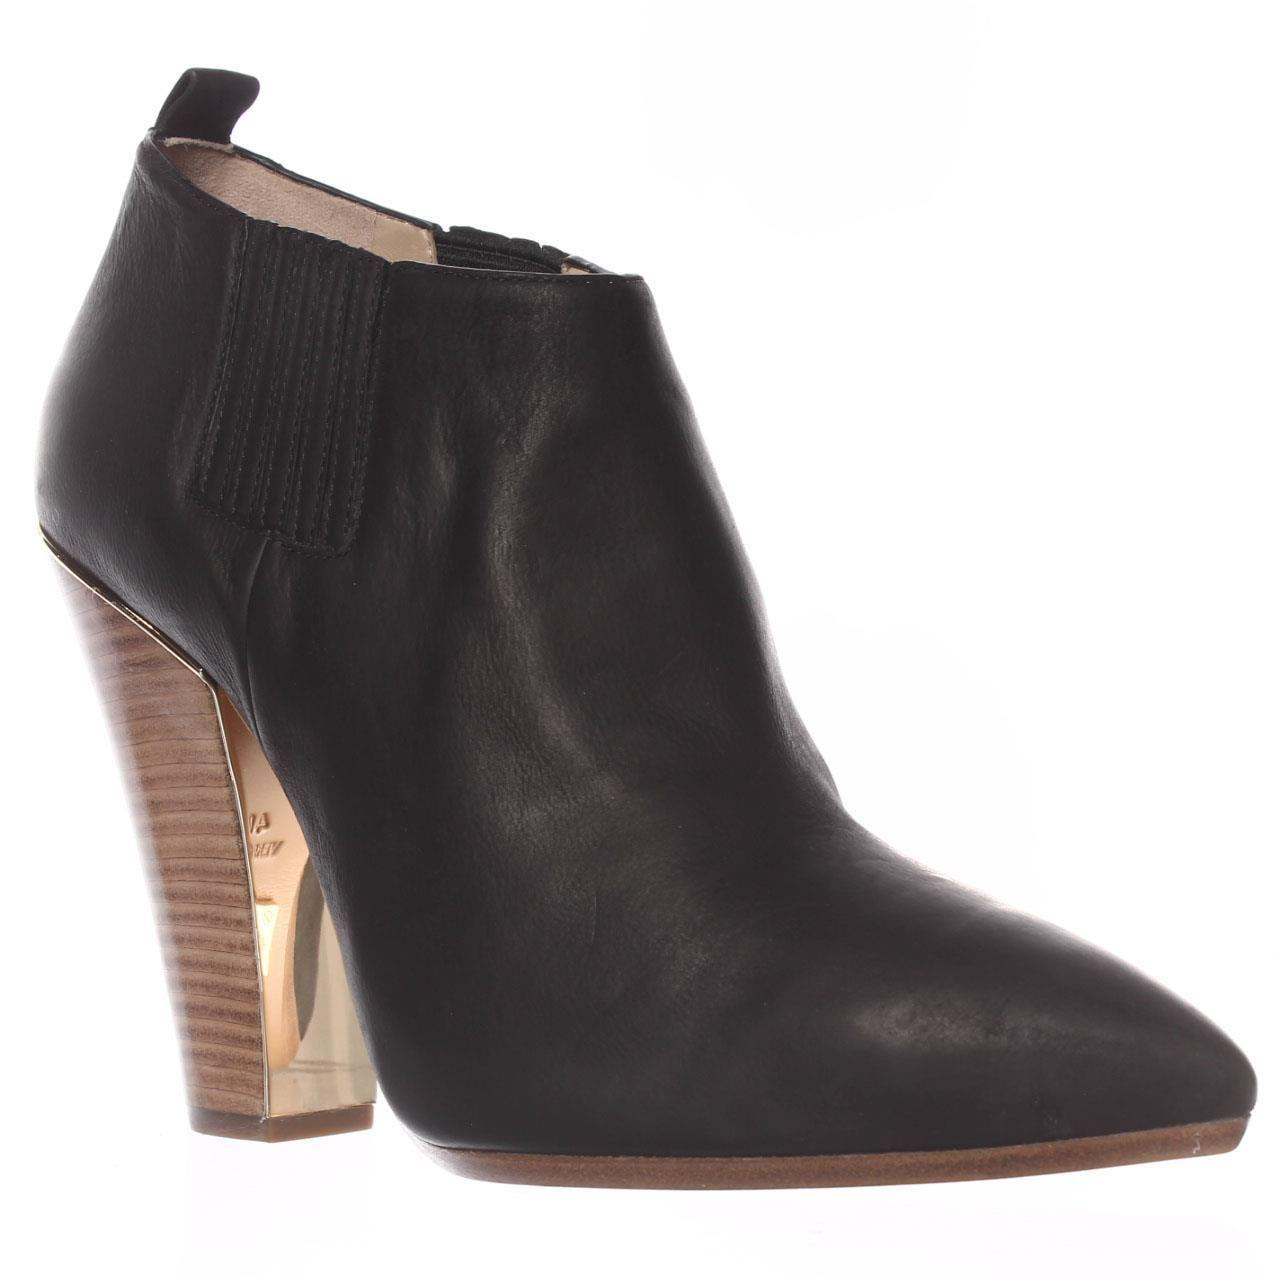 498039a2cc01 Michael Kors Michael Lacy Ankle Boots in Black - Save 47% - Lyst